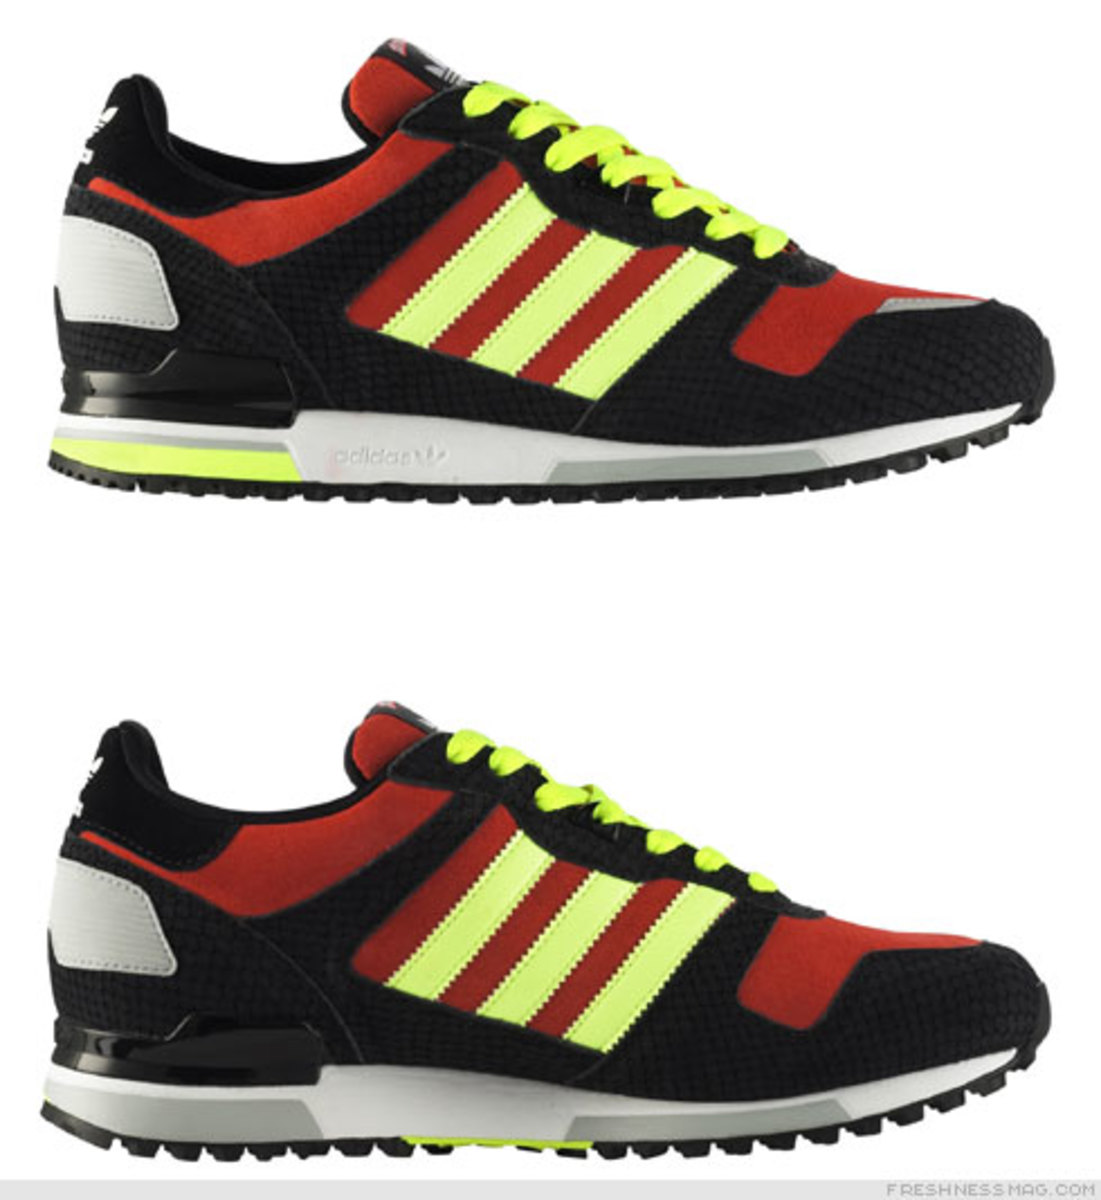 Freshness Feature: Adidas ZX Family - Animal Pack - 5